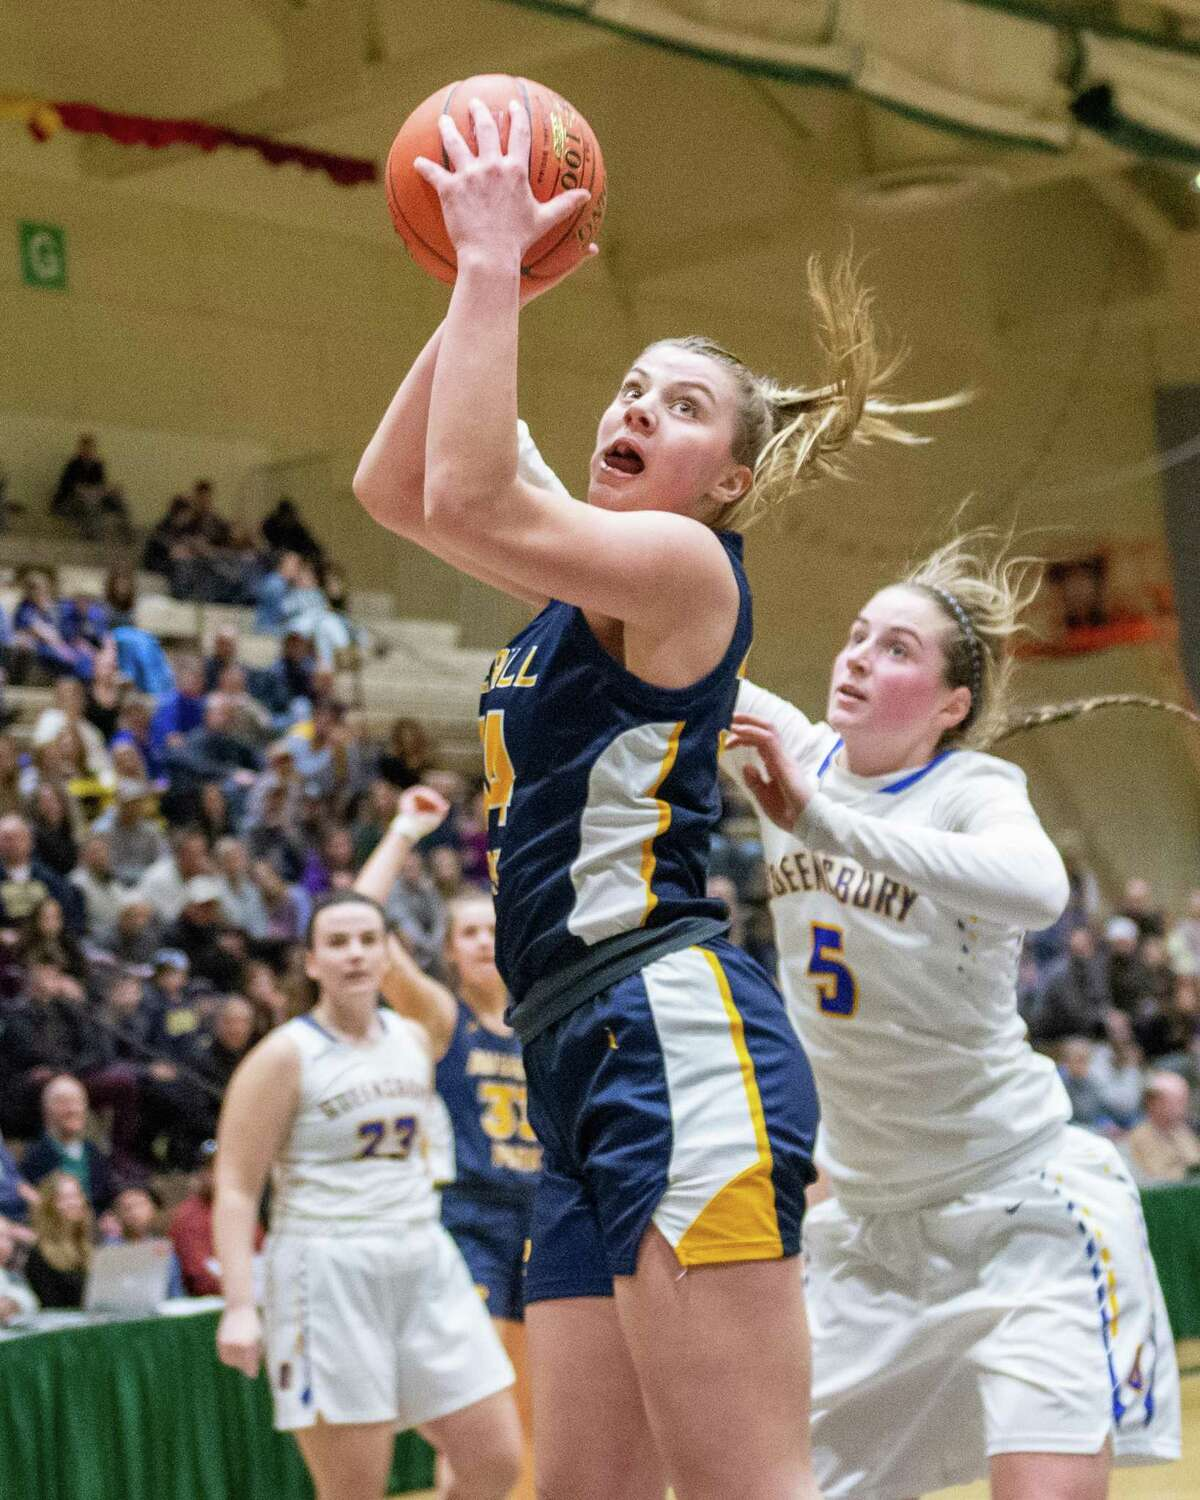 Sacred Heart women's basketball signee Kelsey Wood of Averill Park grabs a rebound in front of Queensbury senior Hailey Ballard in the Section II Class A finals at Hudson Valley Community College in Troy, N.Y., in March.